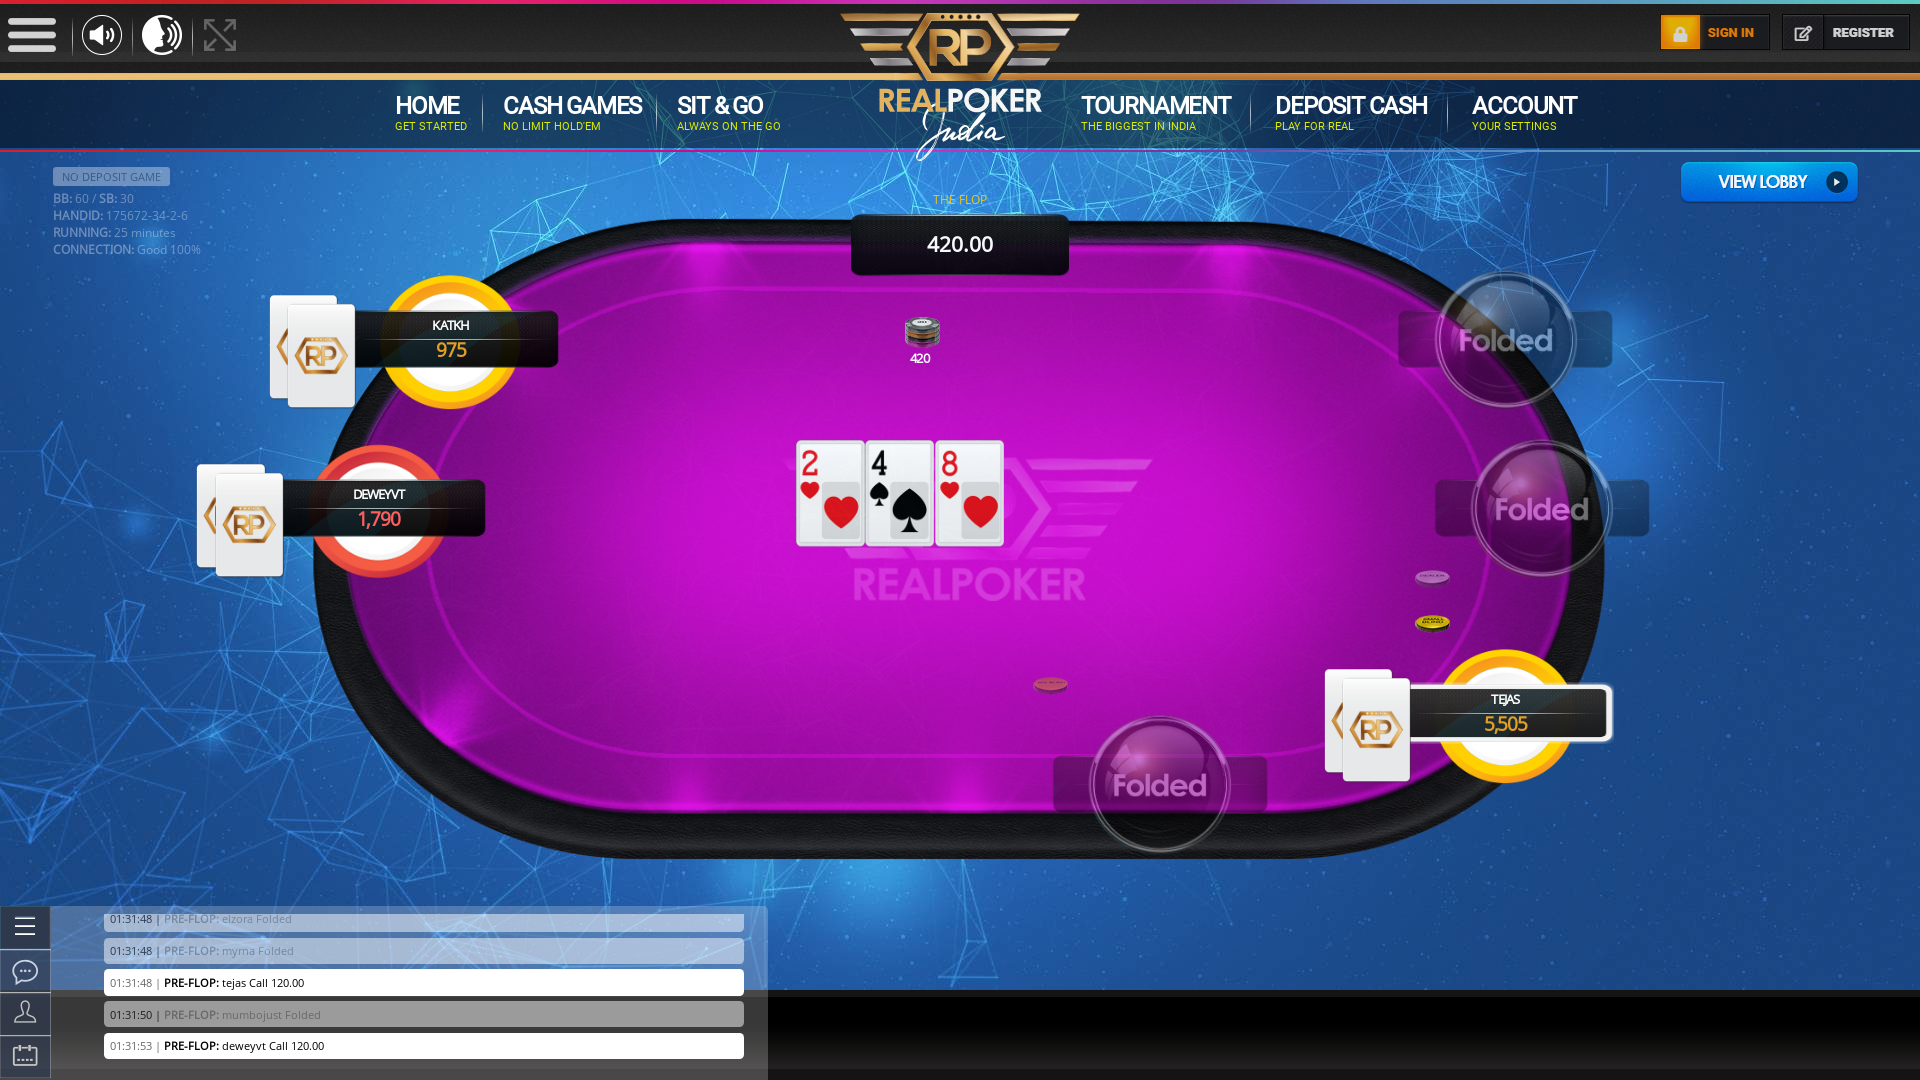 Indian 10 player poker in the 25th minute